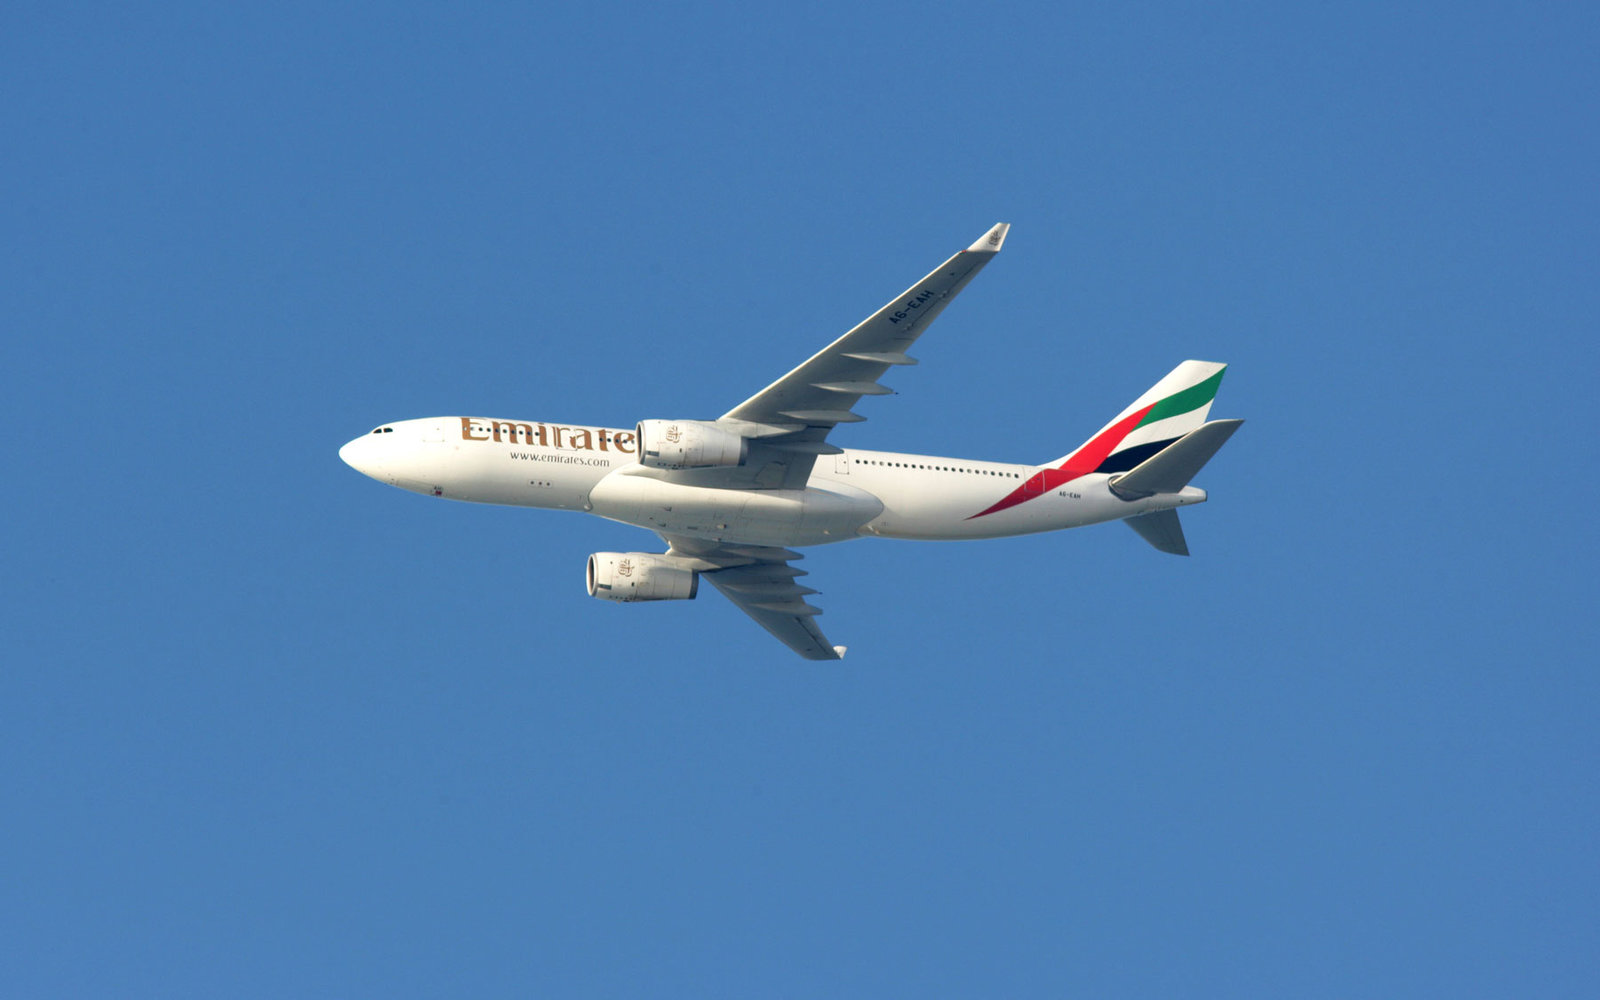 An Emirates plane in flight.